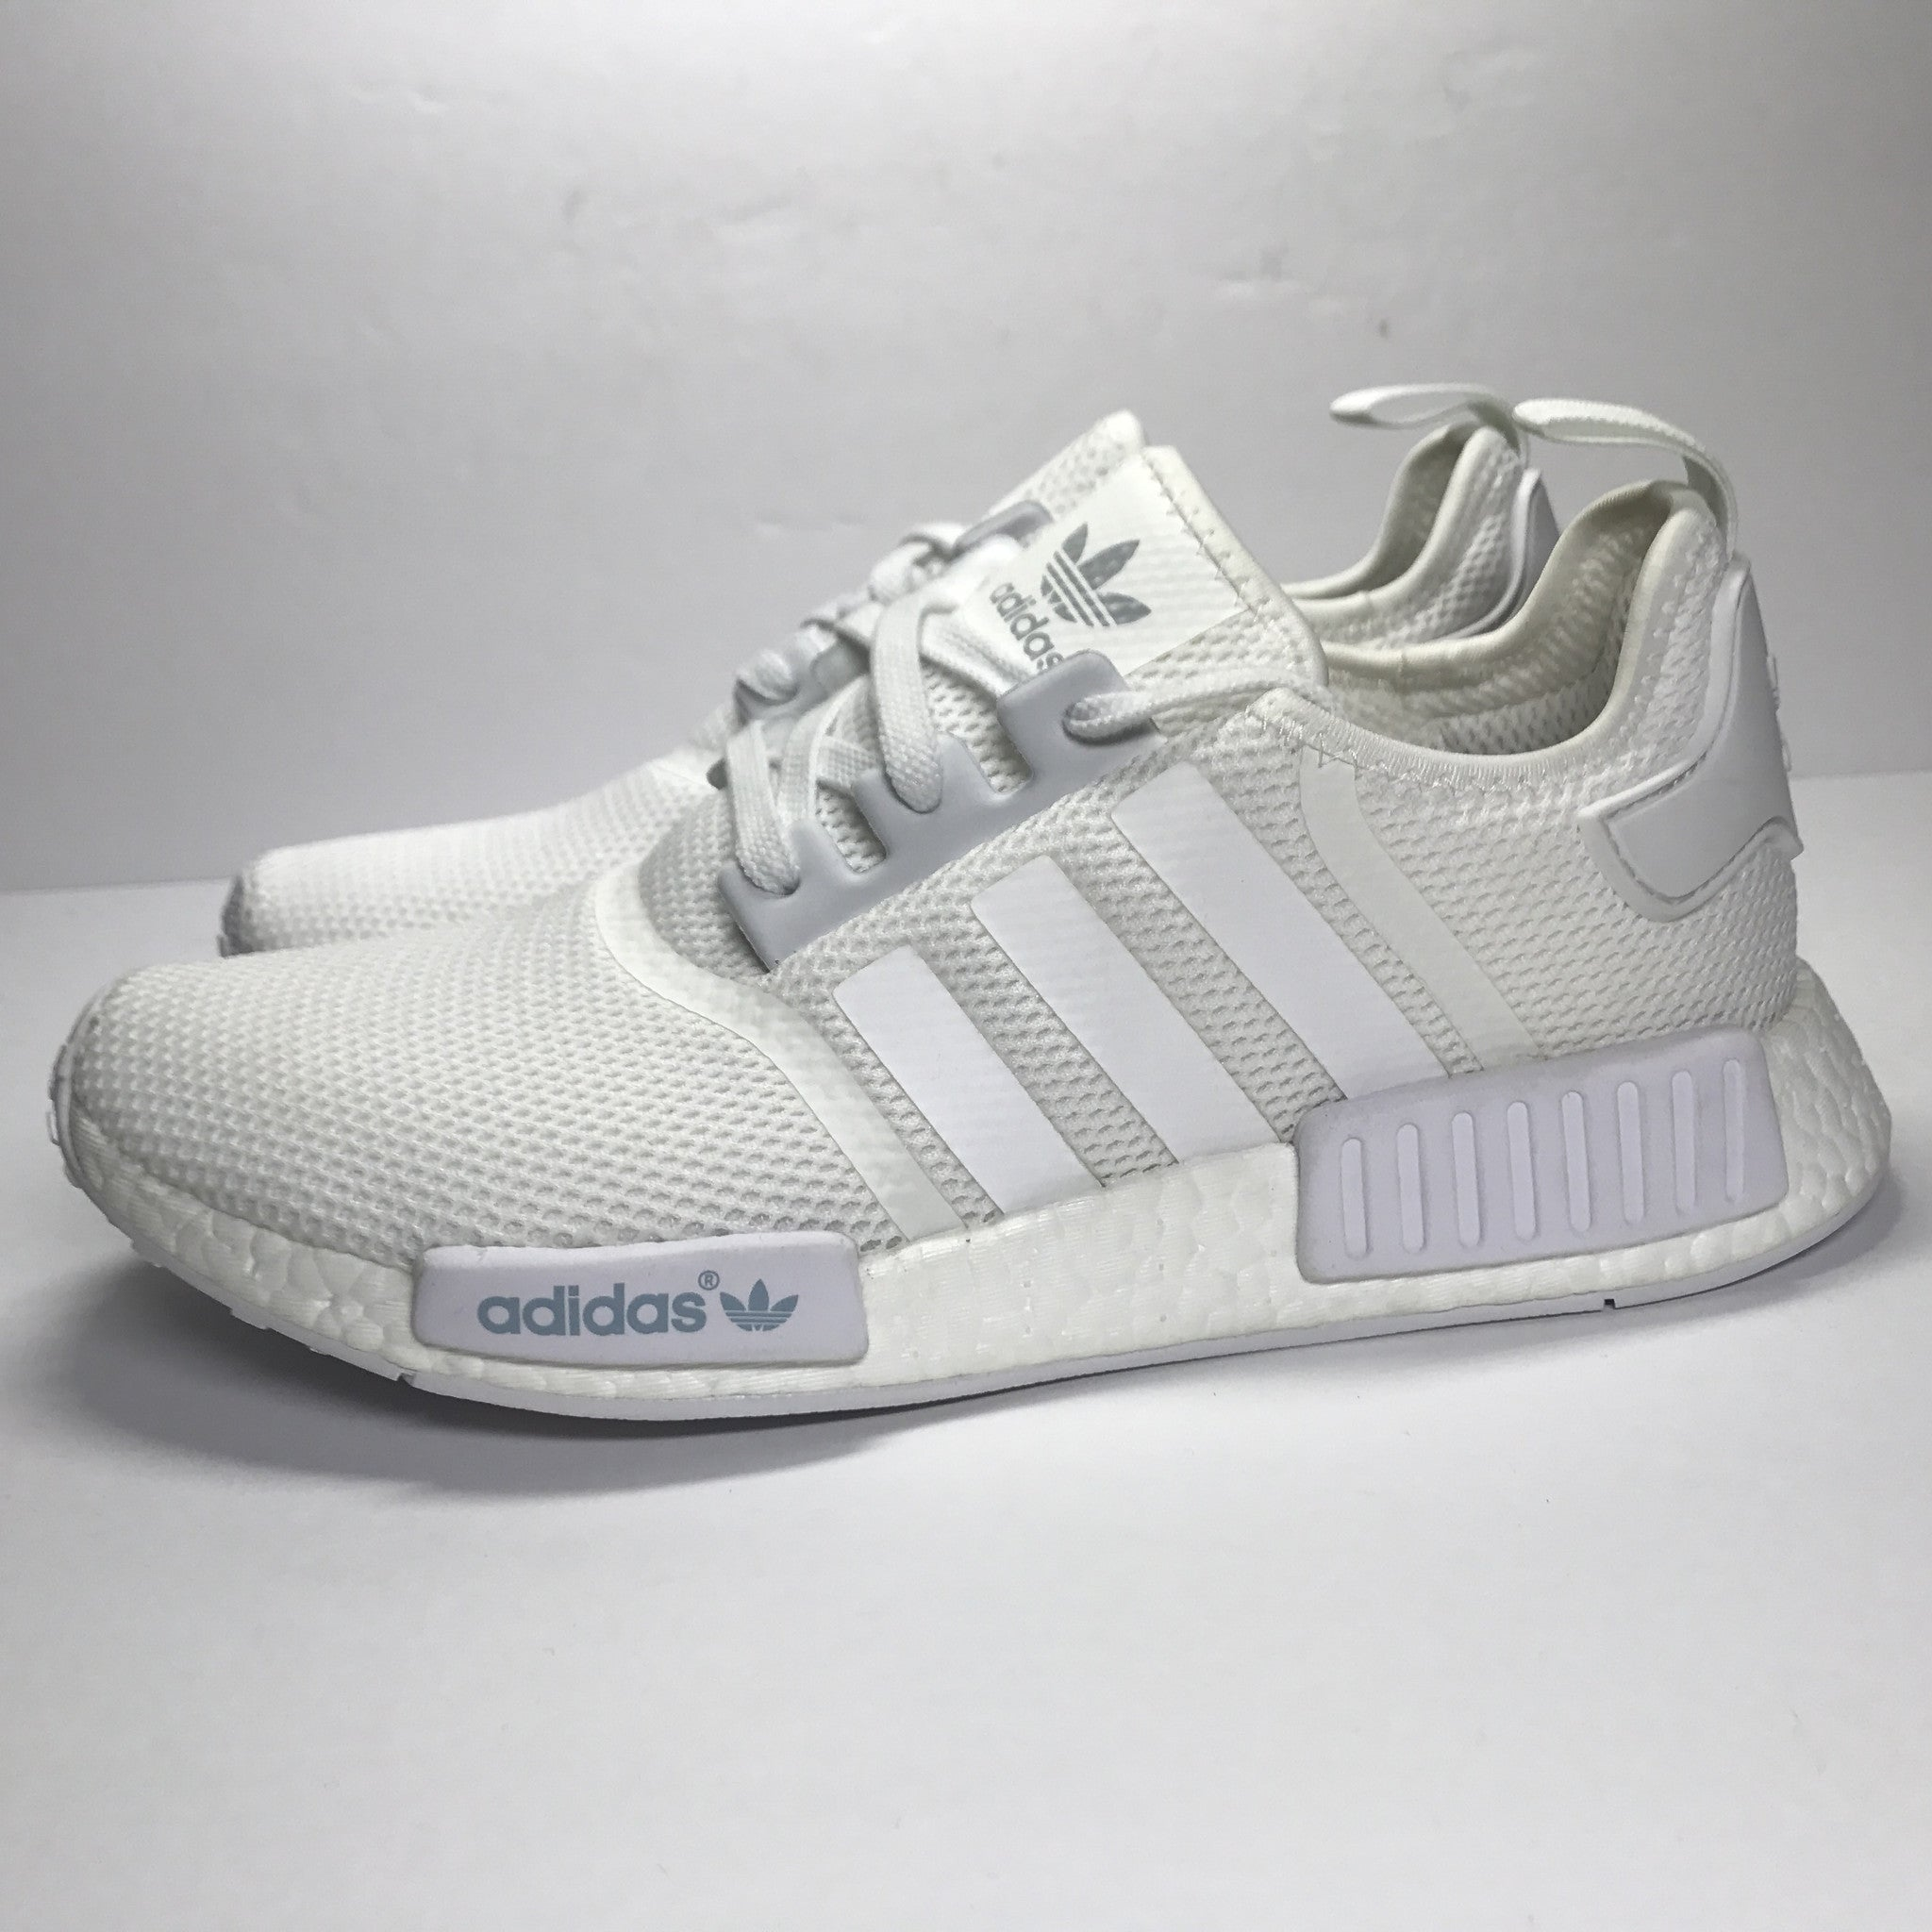 DS Adidas NMD R1 Nomad Triple White